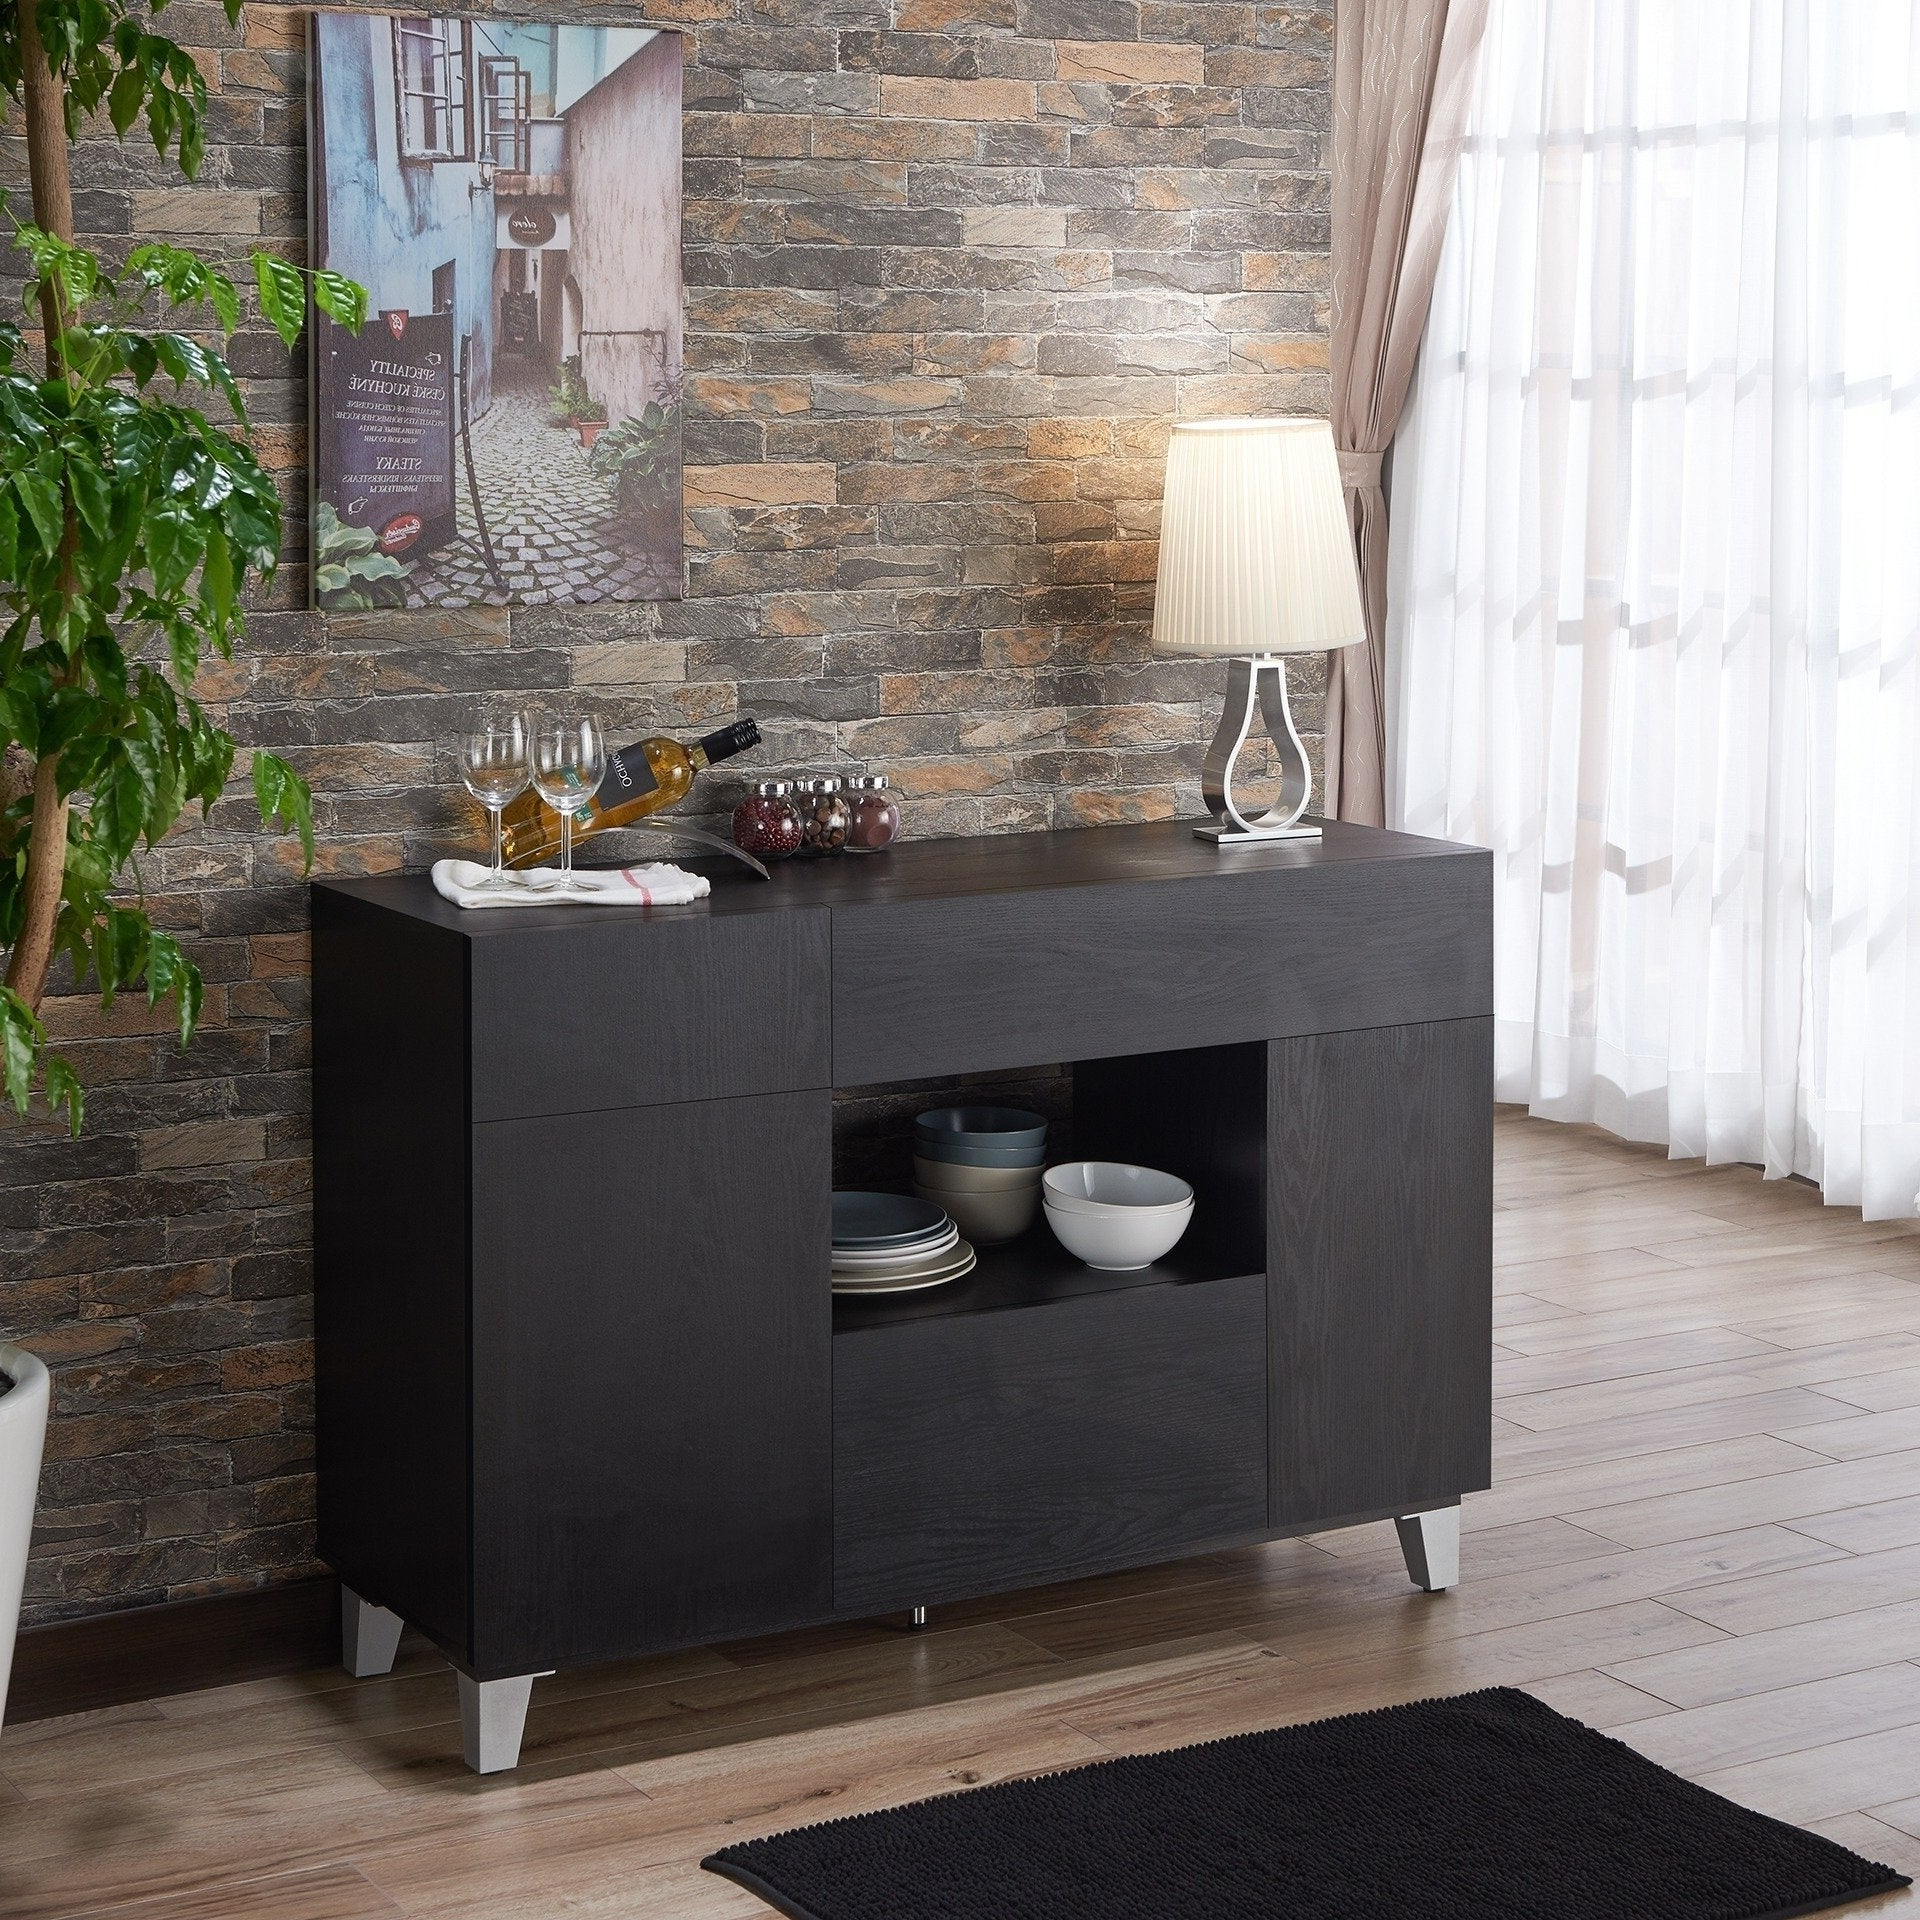 Carrera Contemporary 47 Inch Black Dining Buffet Storage Serverfoa With Regard To Contemporary Black Dining Buffets (View 2 of 20)